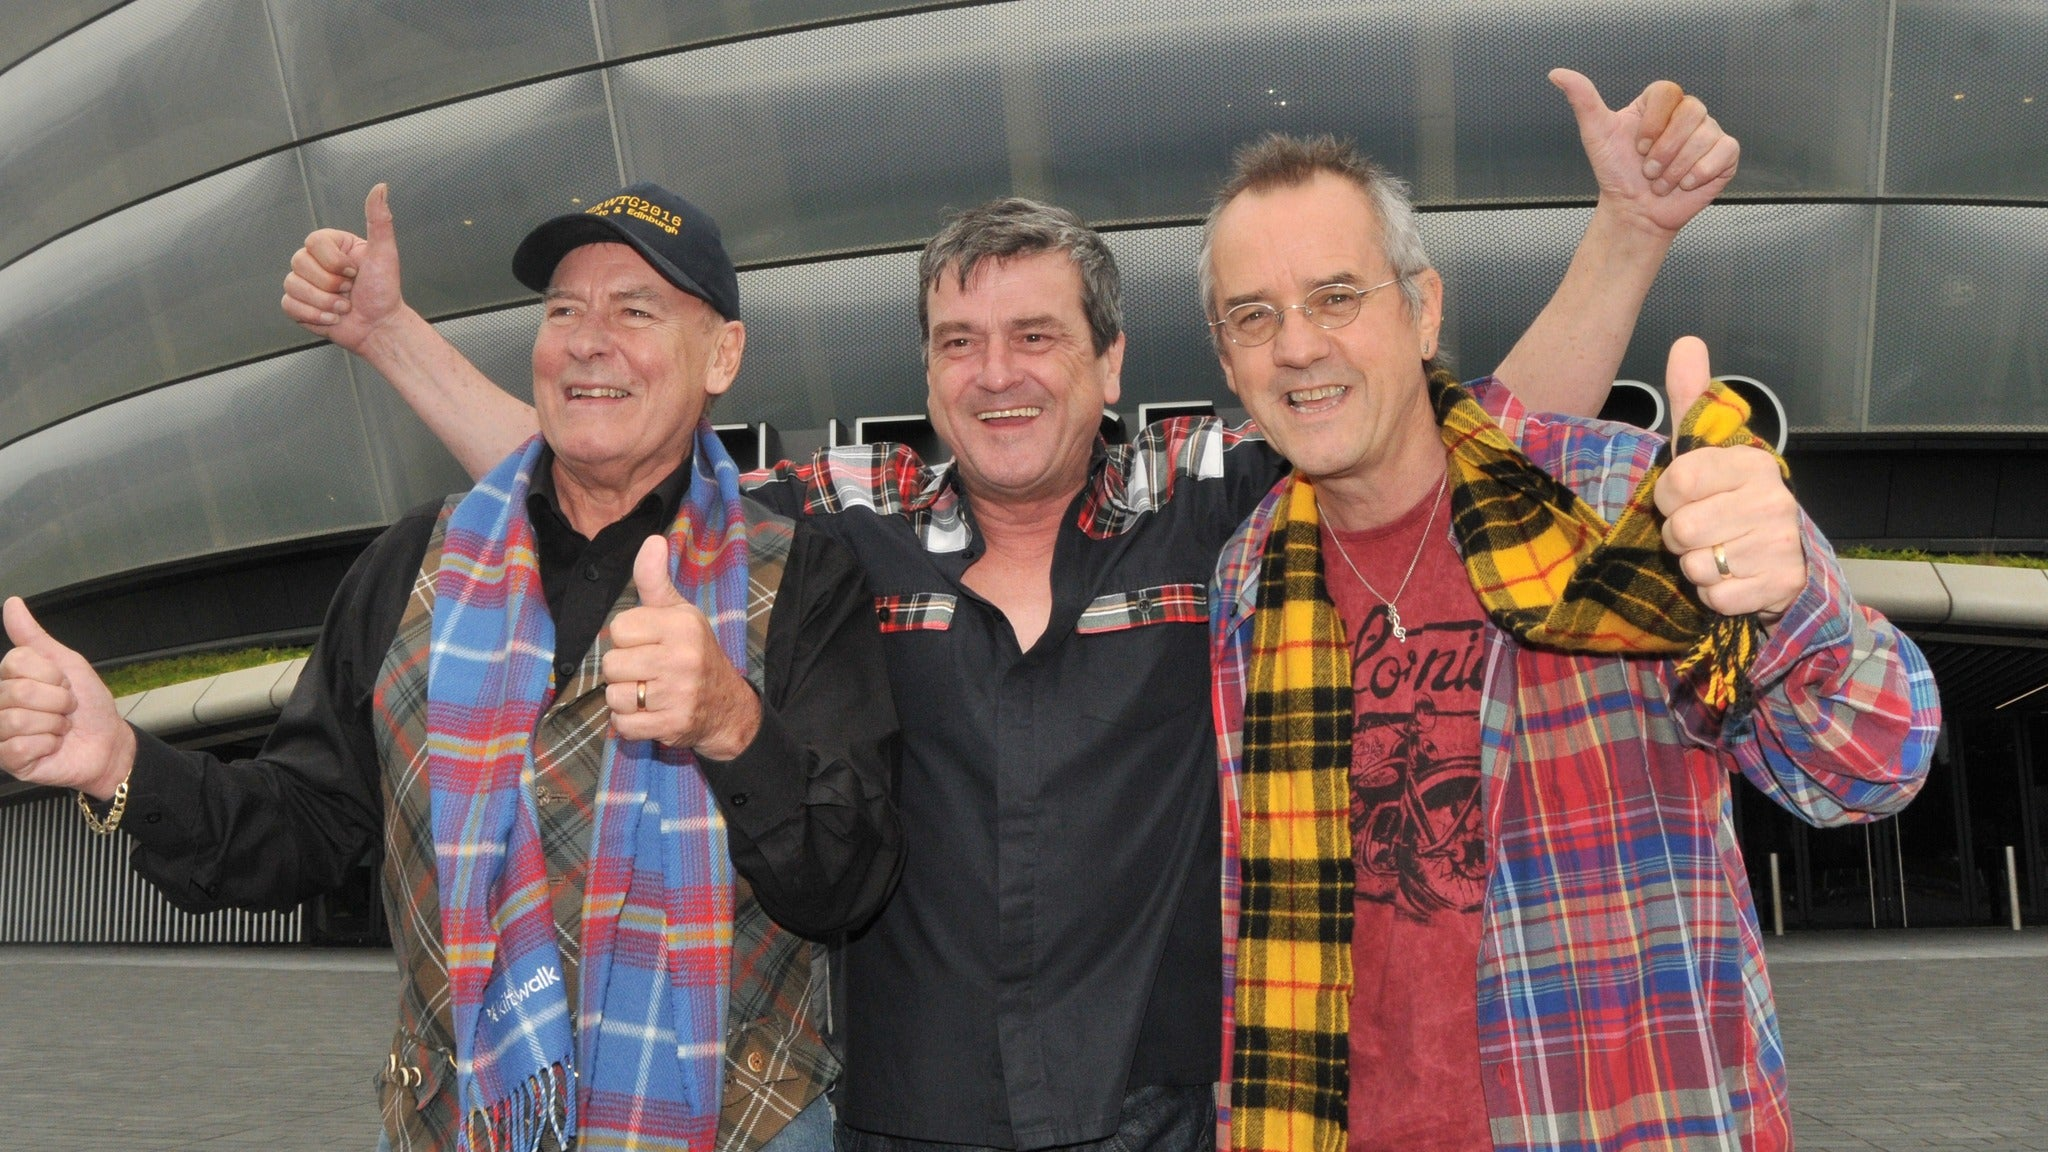 Bay City Rollers at Penn's Peak